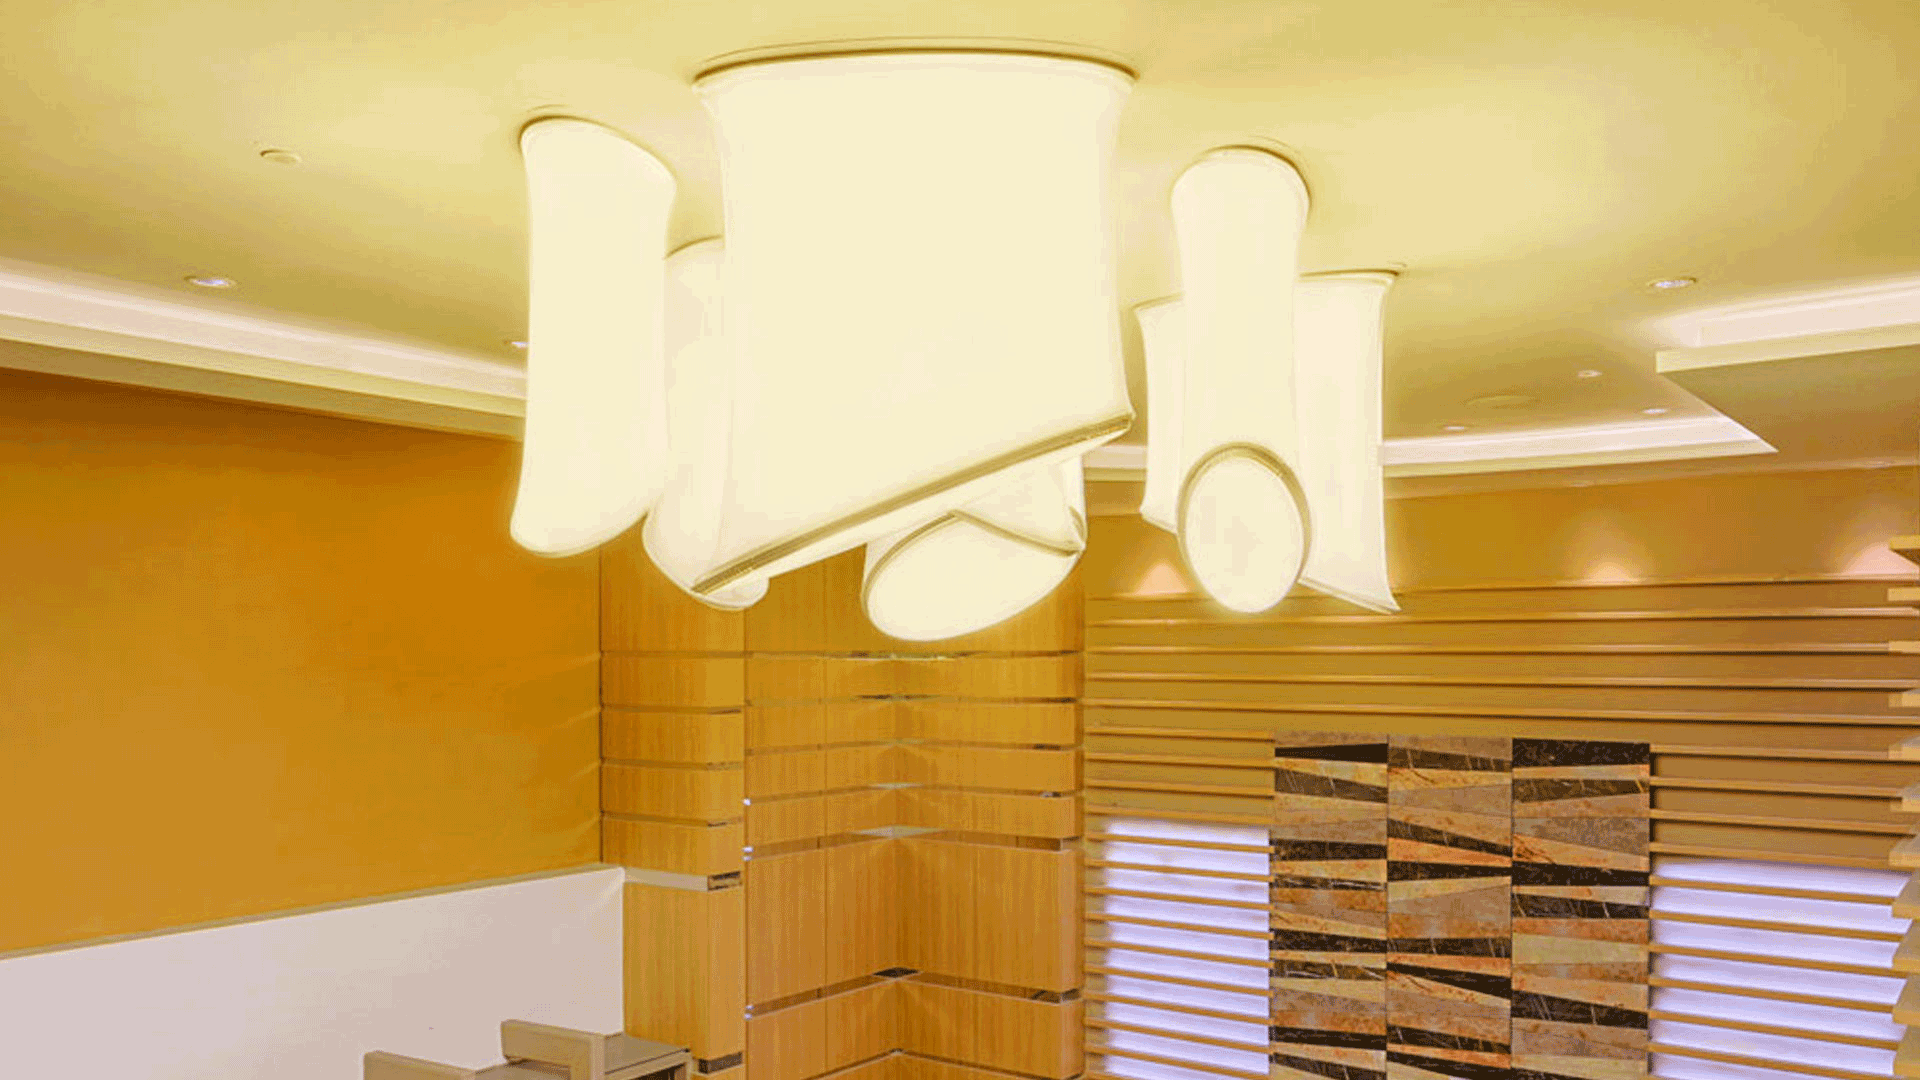 Holiday Inn - 3d Stretch ceiling translucent with backlighting in retail